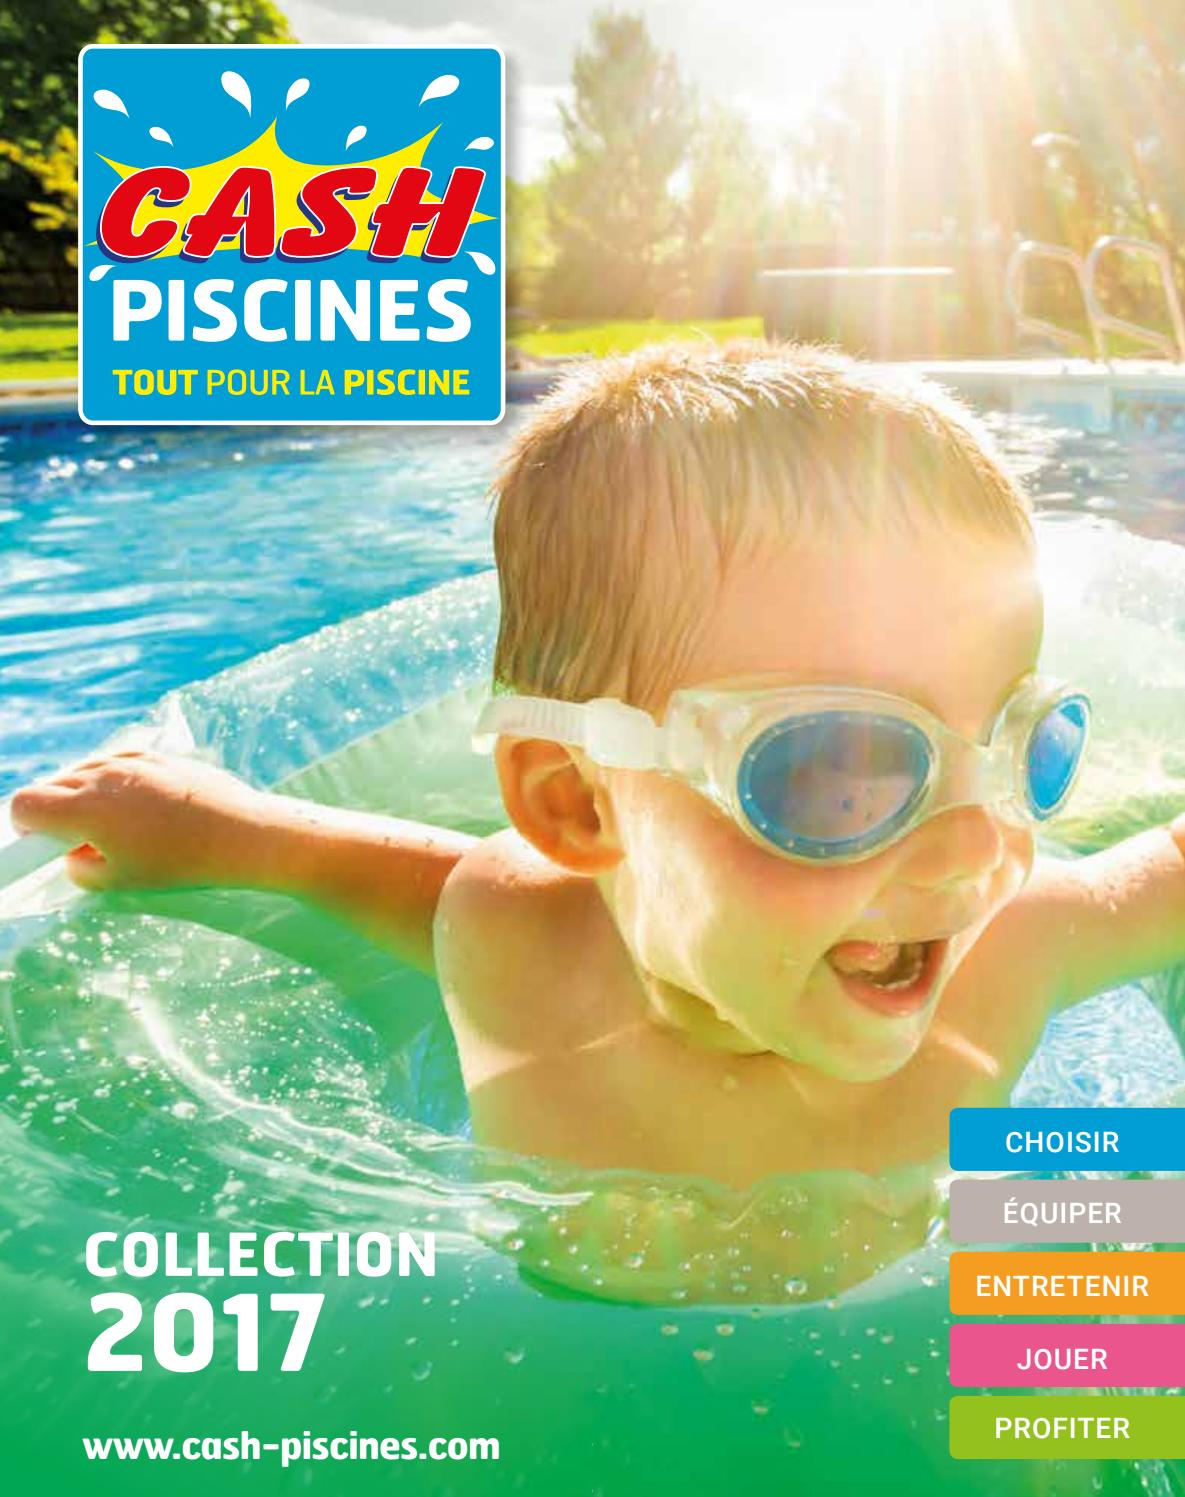 Catalogue Cash Piscine 2017 By Octave Octave - Issuu serapportantà Cash Piscine Pierrelatte